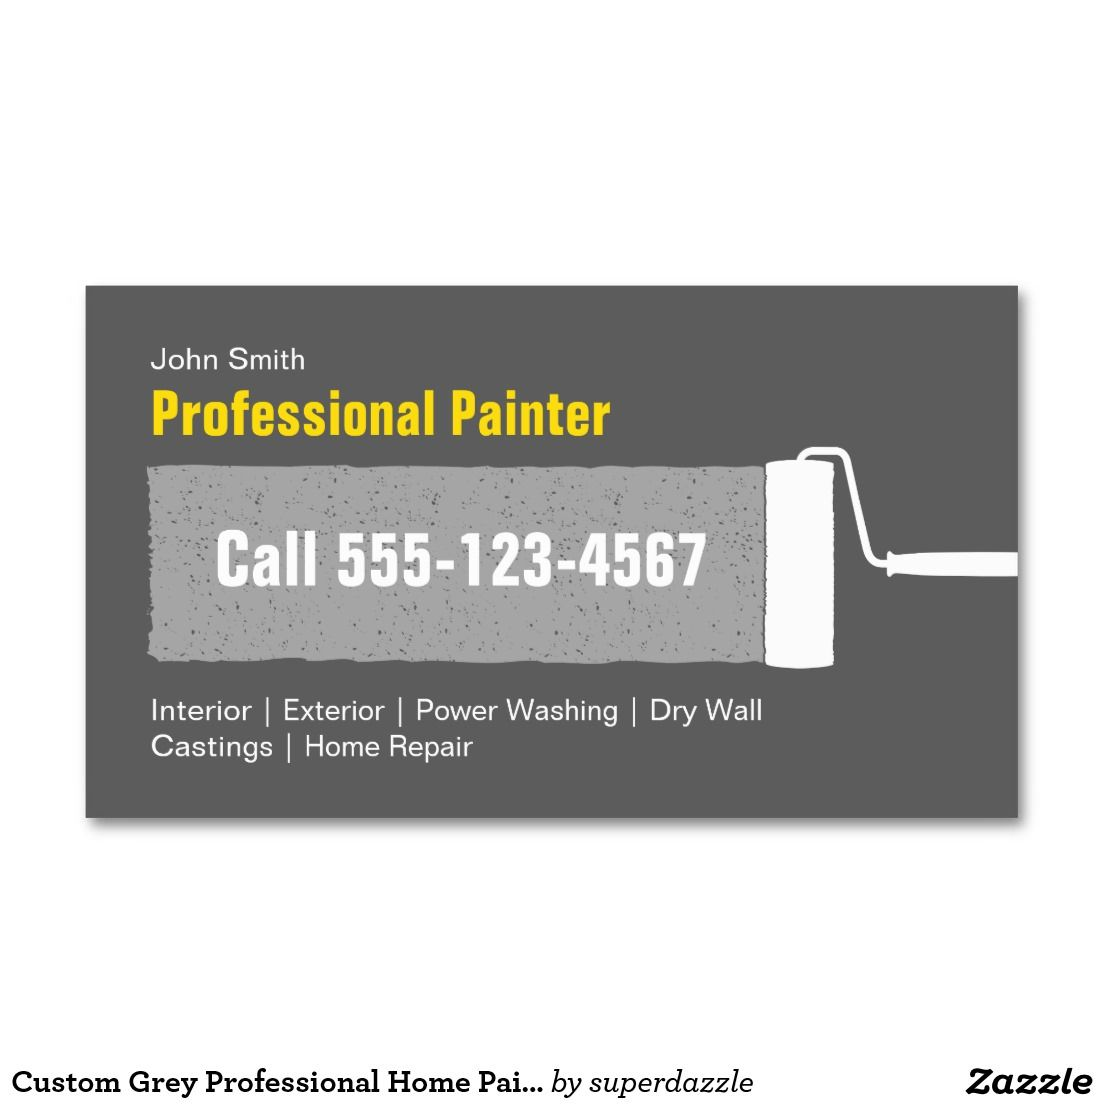 Custom Grey Professional Home Painting Business Card | Standard ...